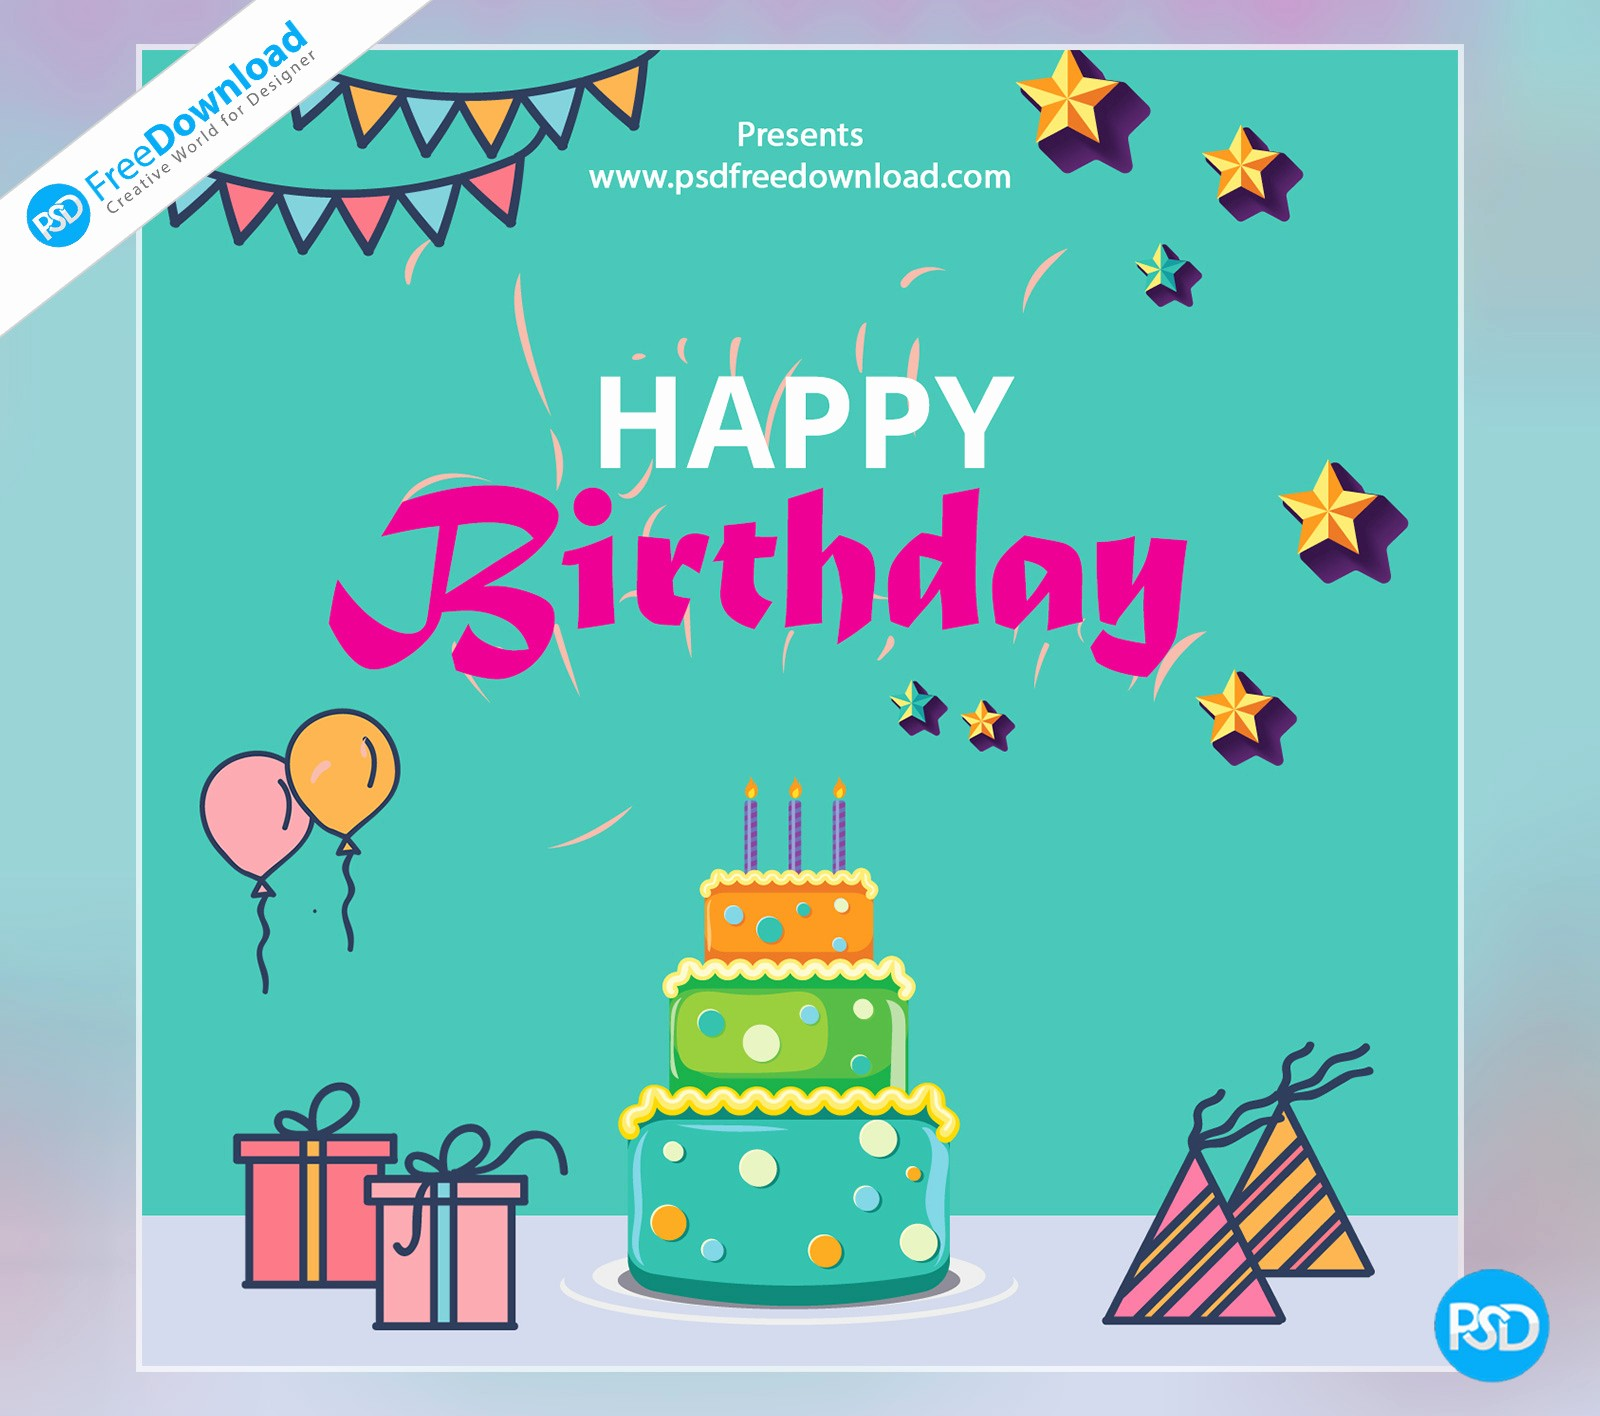 Birthday Card Template with Photo Awesome Happy Birthday Template Greeting Card Psd Free Download